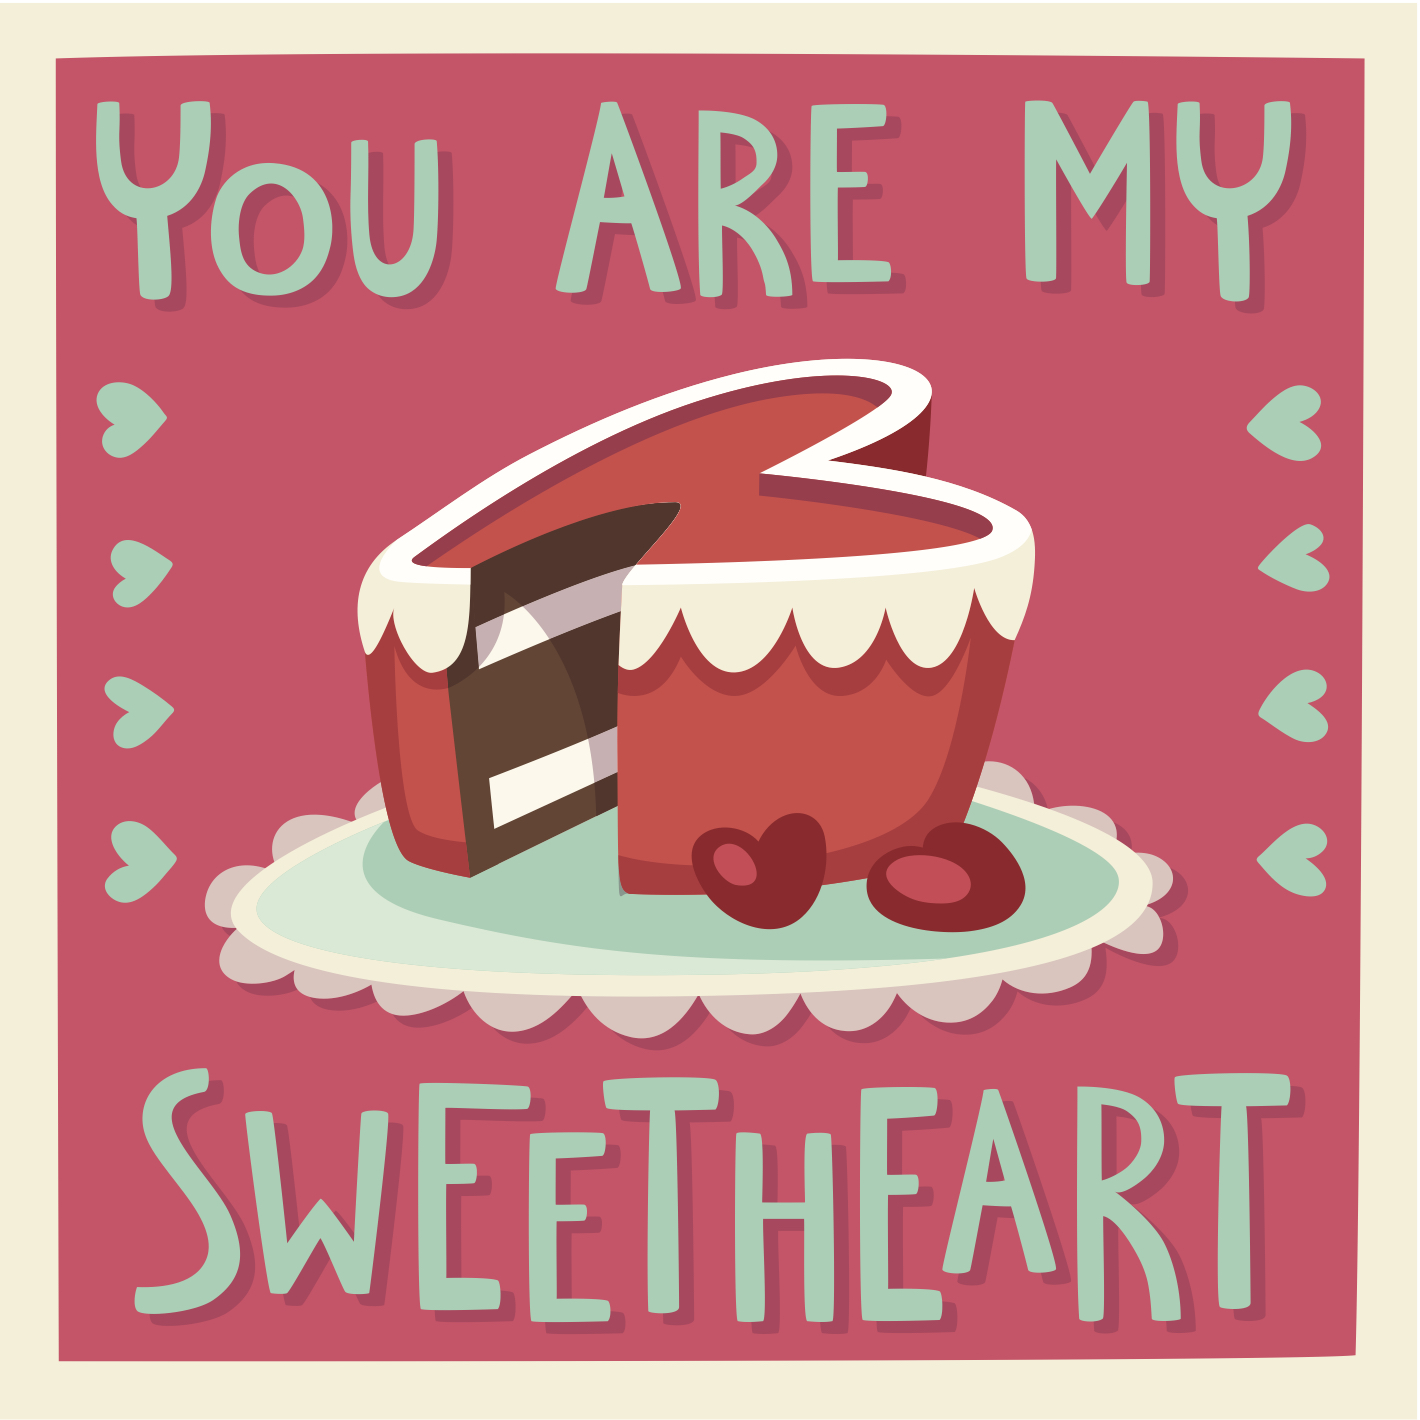 Valentine's Day eCard with a heart shaped cake